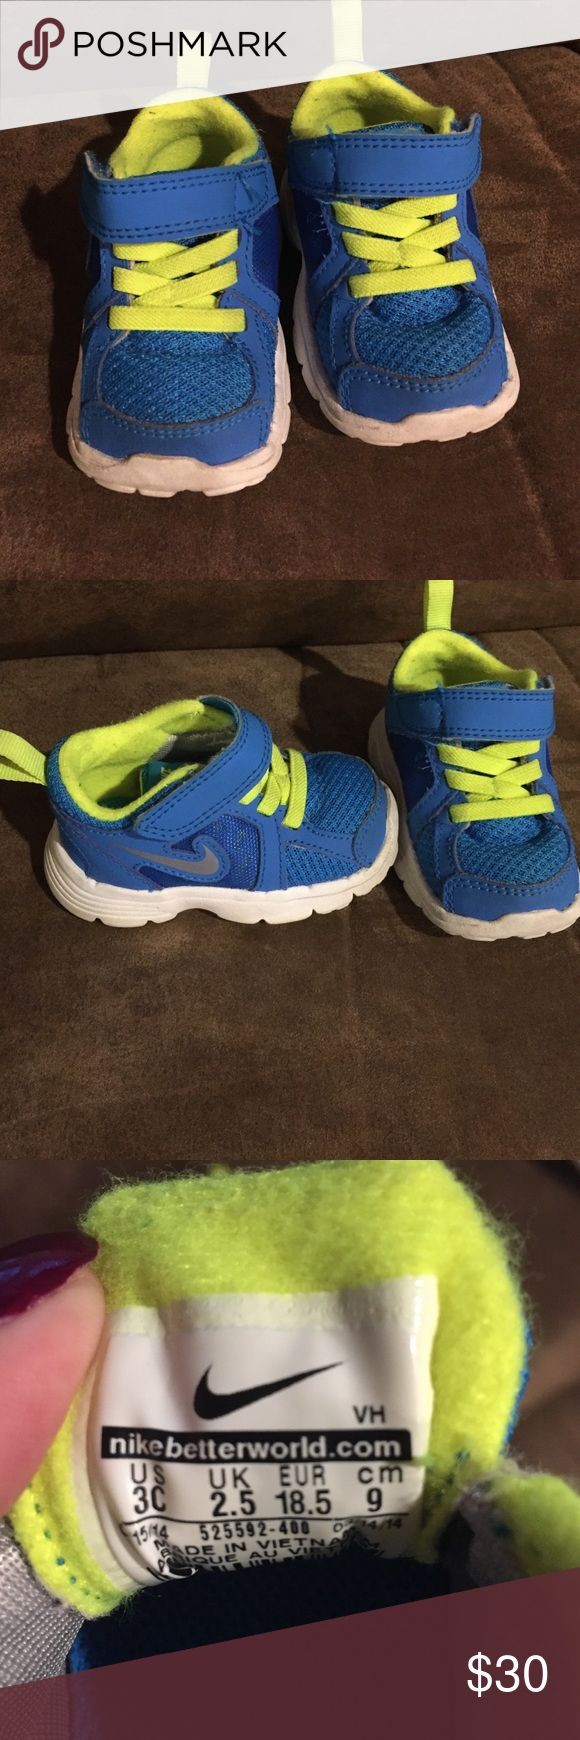 Baby nikes Euc only worn once, son outgrew too fast. Price is FIRM! Bright blue and neon green Nike Shoes Baby & Walker